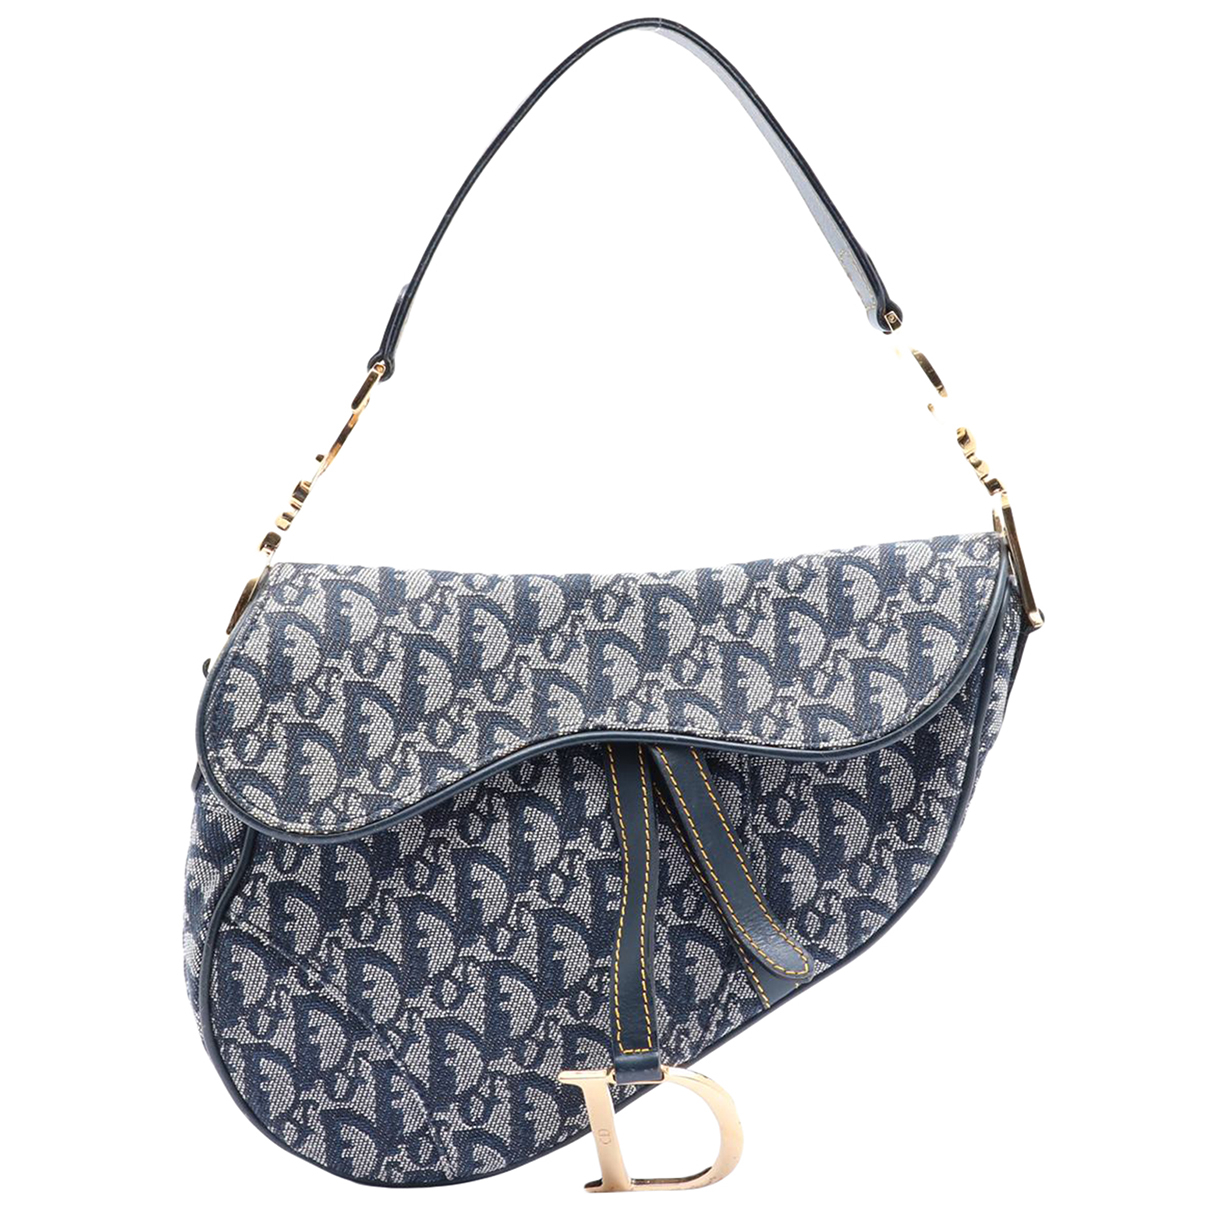 Christian Dior N Blue Cloth handbag for Women N